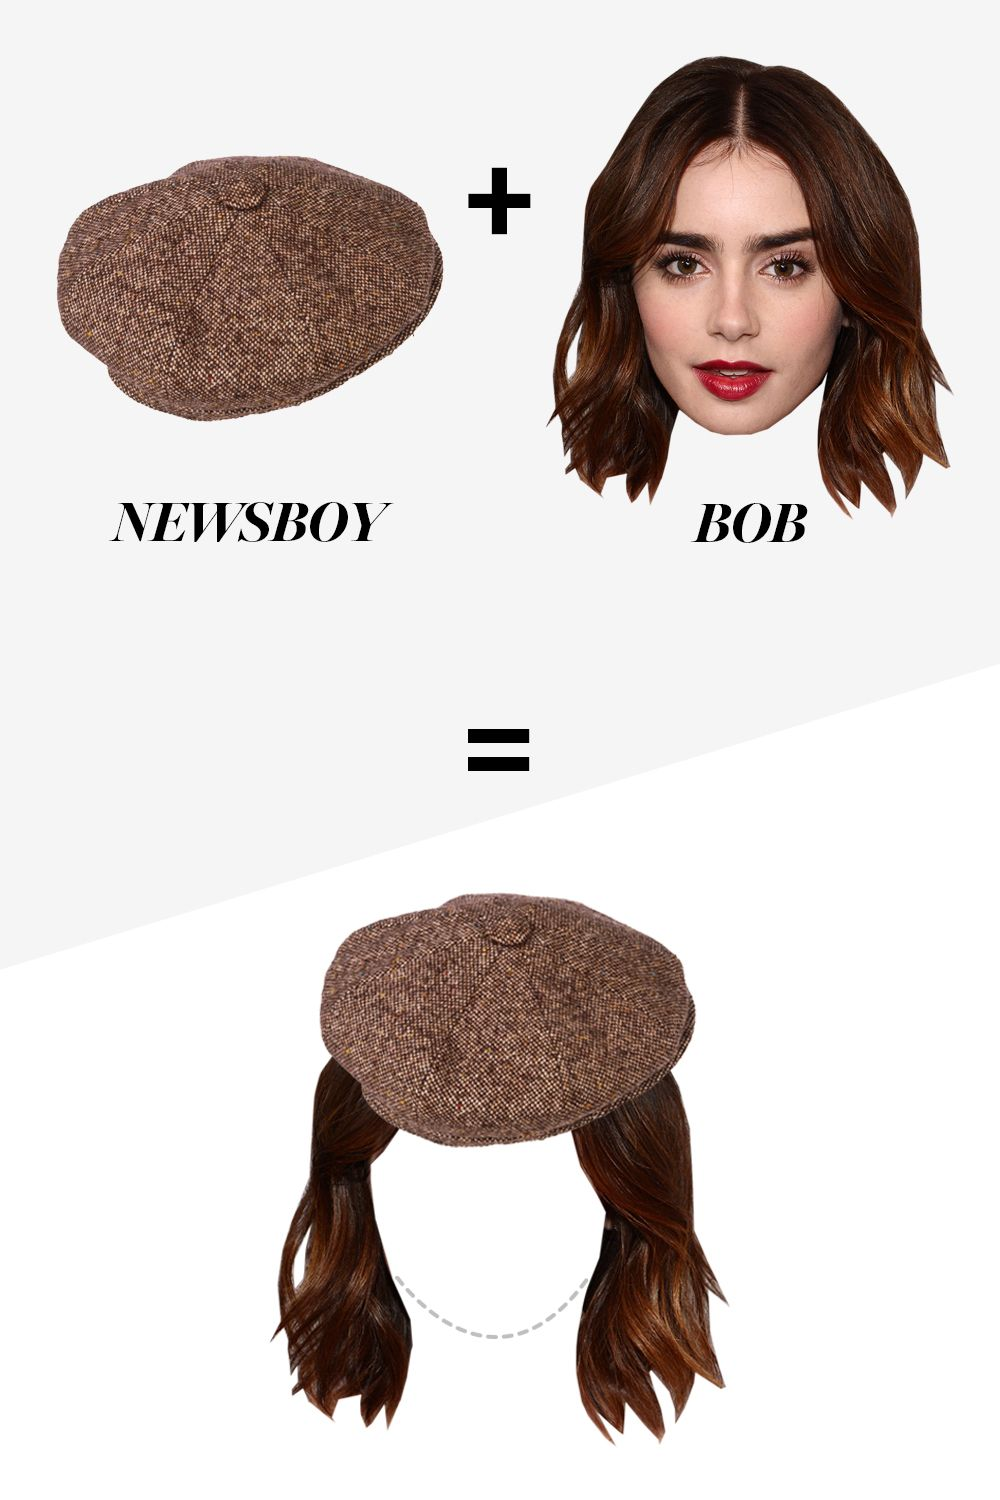 What Hairstyle Works with Hat Styles - Finding a Cute Hat for Hairdo